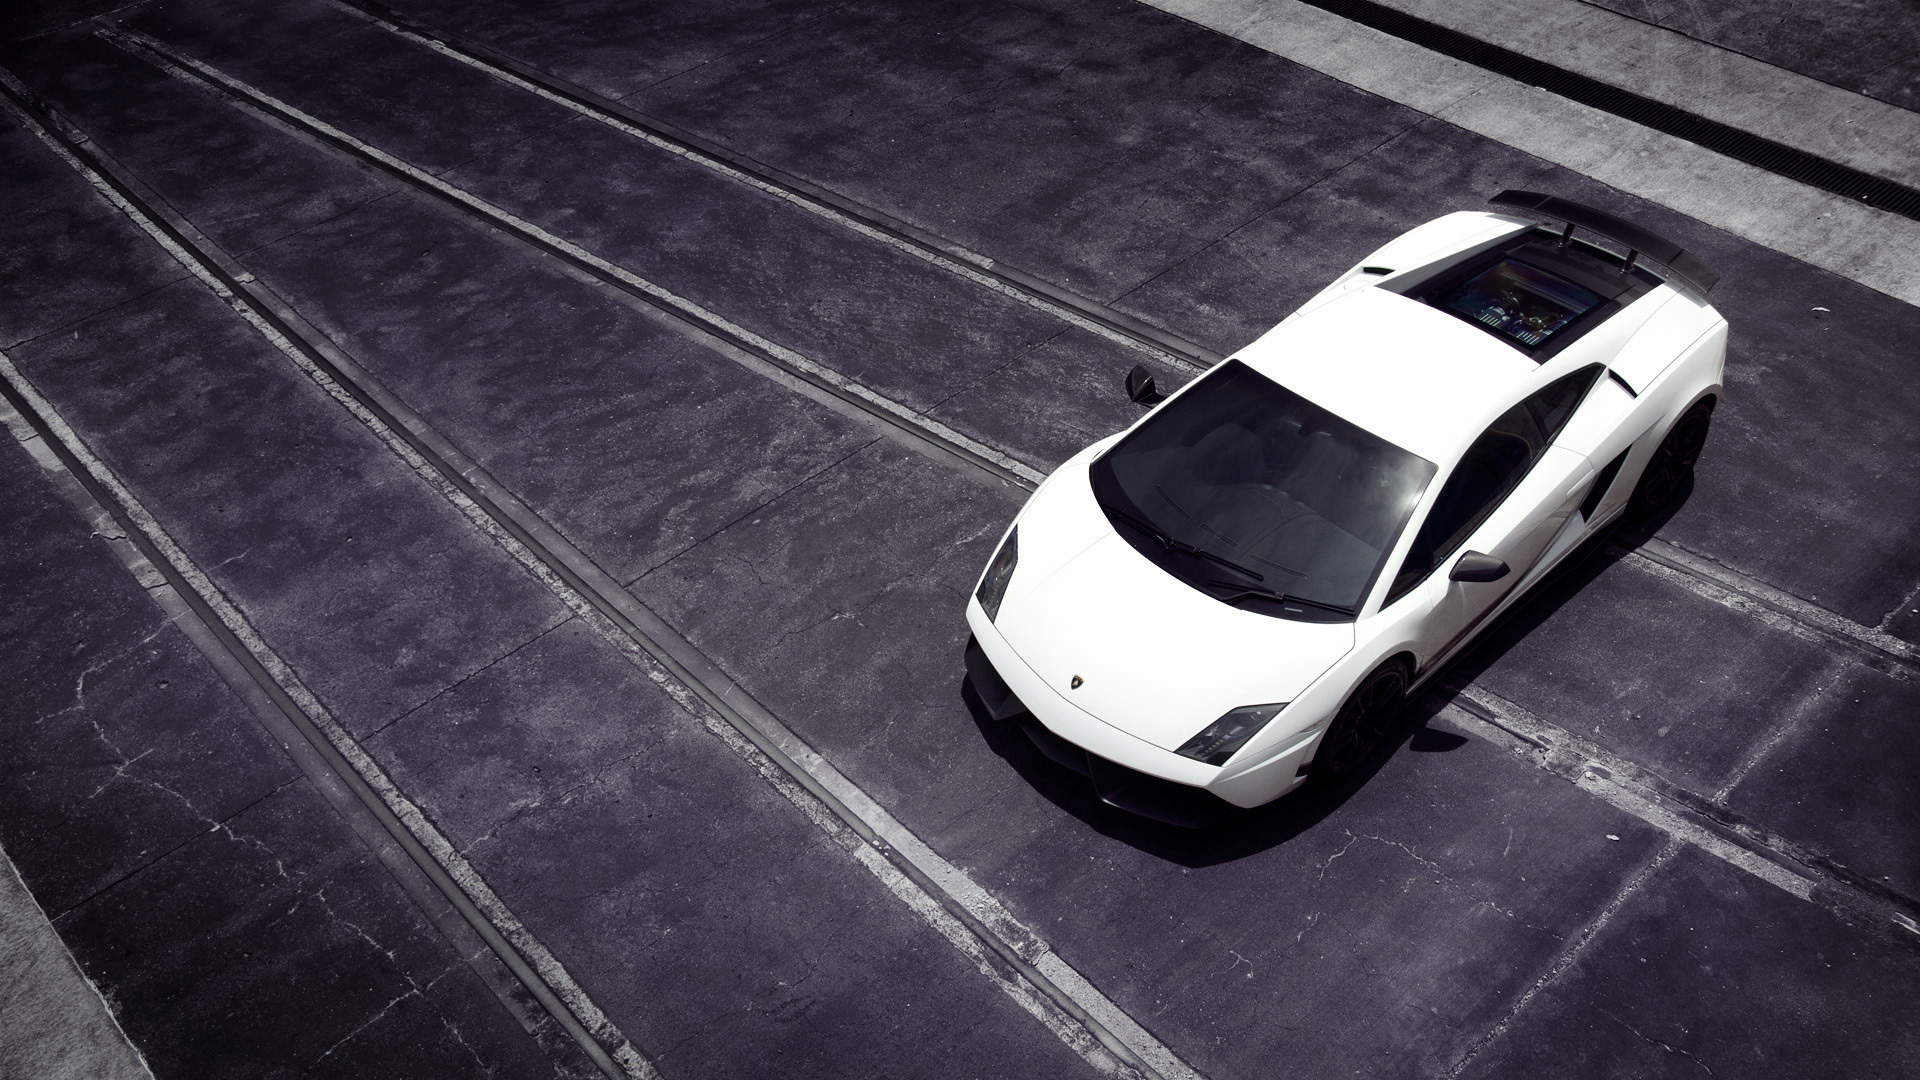 авто фото, тачки, lp570-4, авто обои, superleggera, cars, lamborghini, фон, auto wallpapers, gallardo